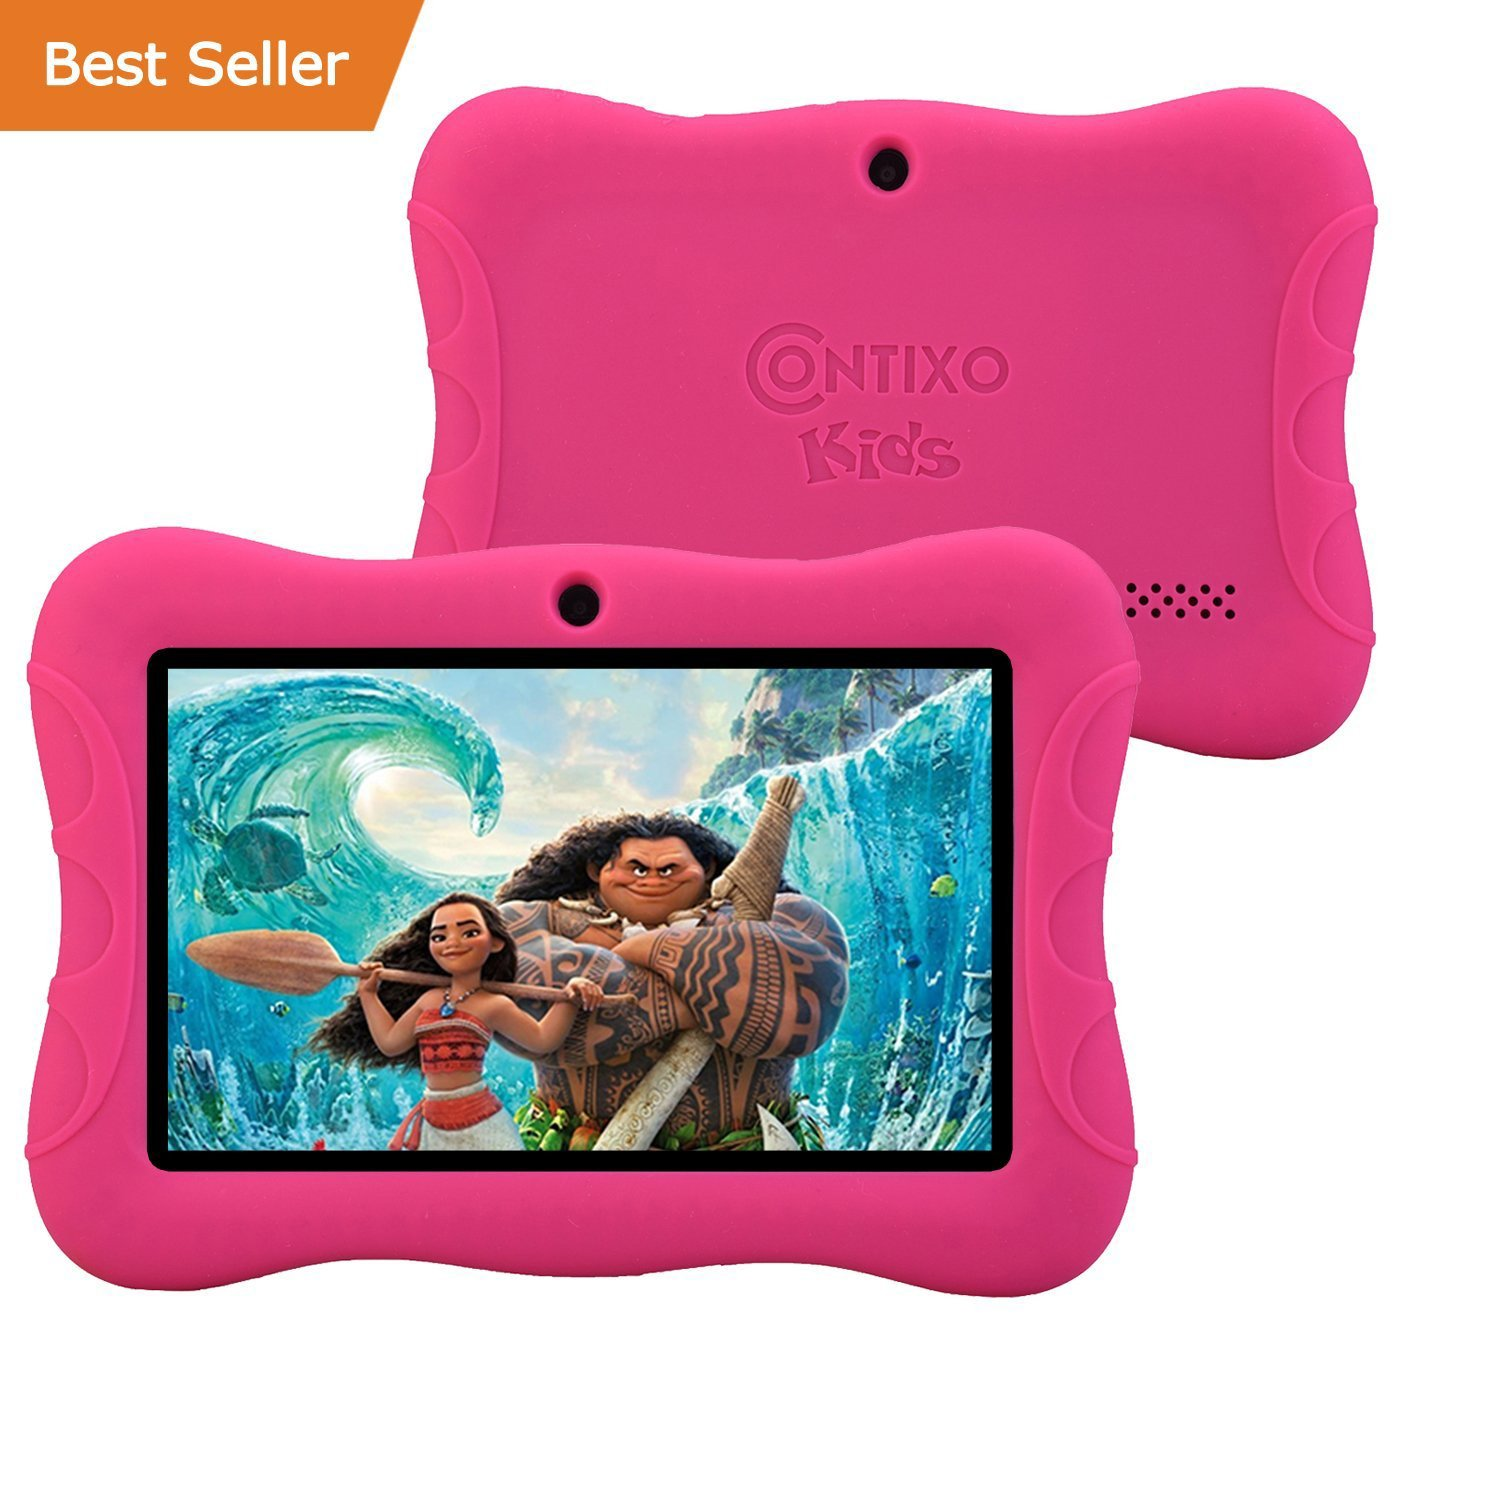 Contixo Kids Safe 7'' Quad-Core Tablet 8GB, Bluetooth, Wi-Fi, HD Edition w/ Kids-Place Parental Control, Kid-Proof Case (Pink) - Best Gift